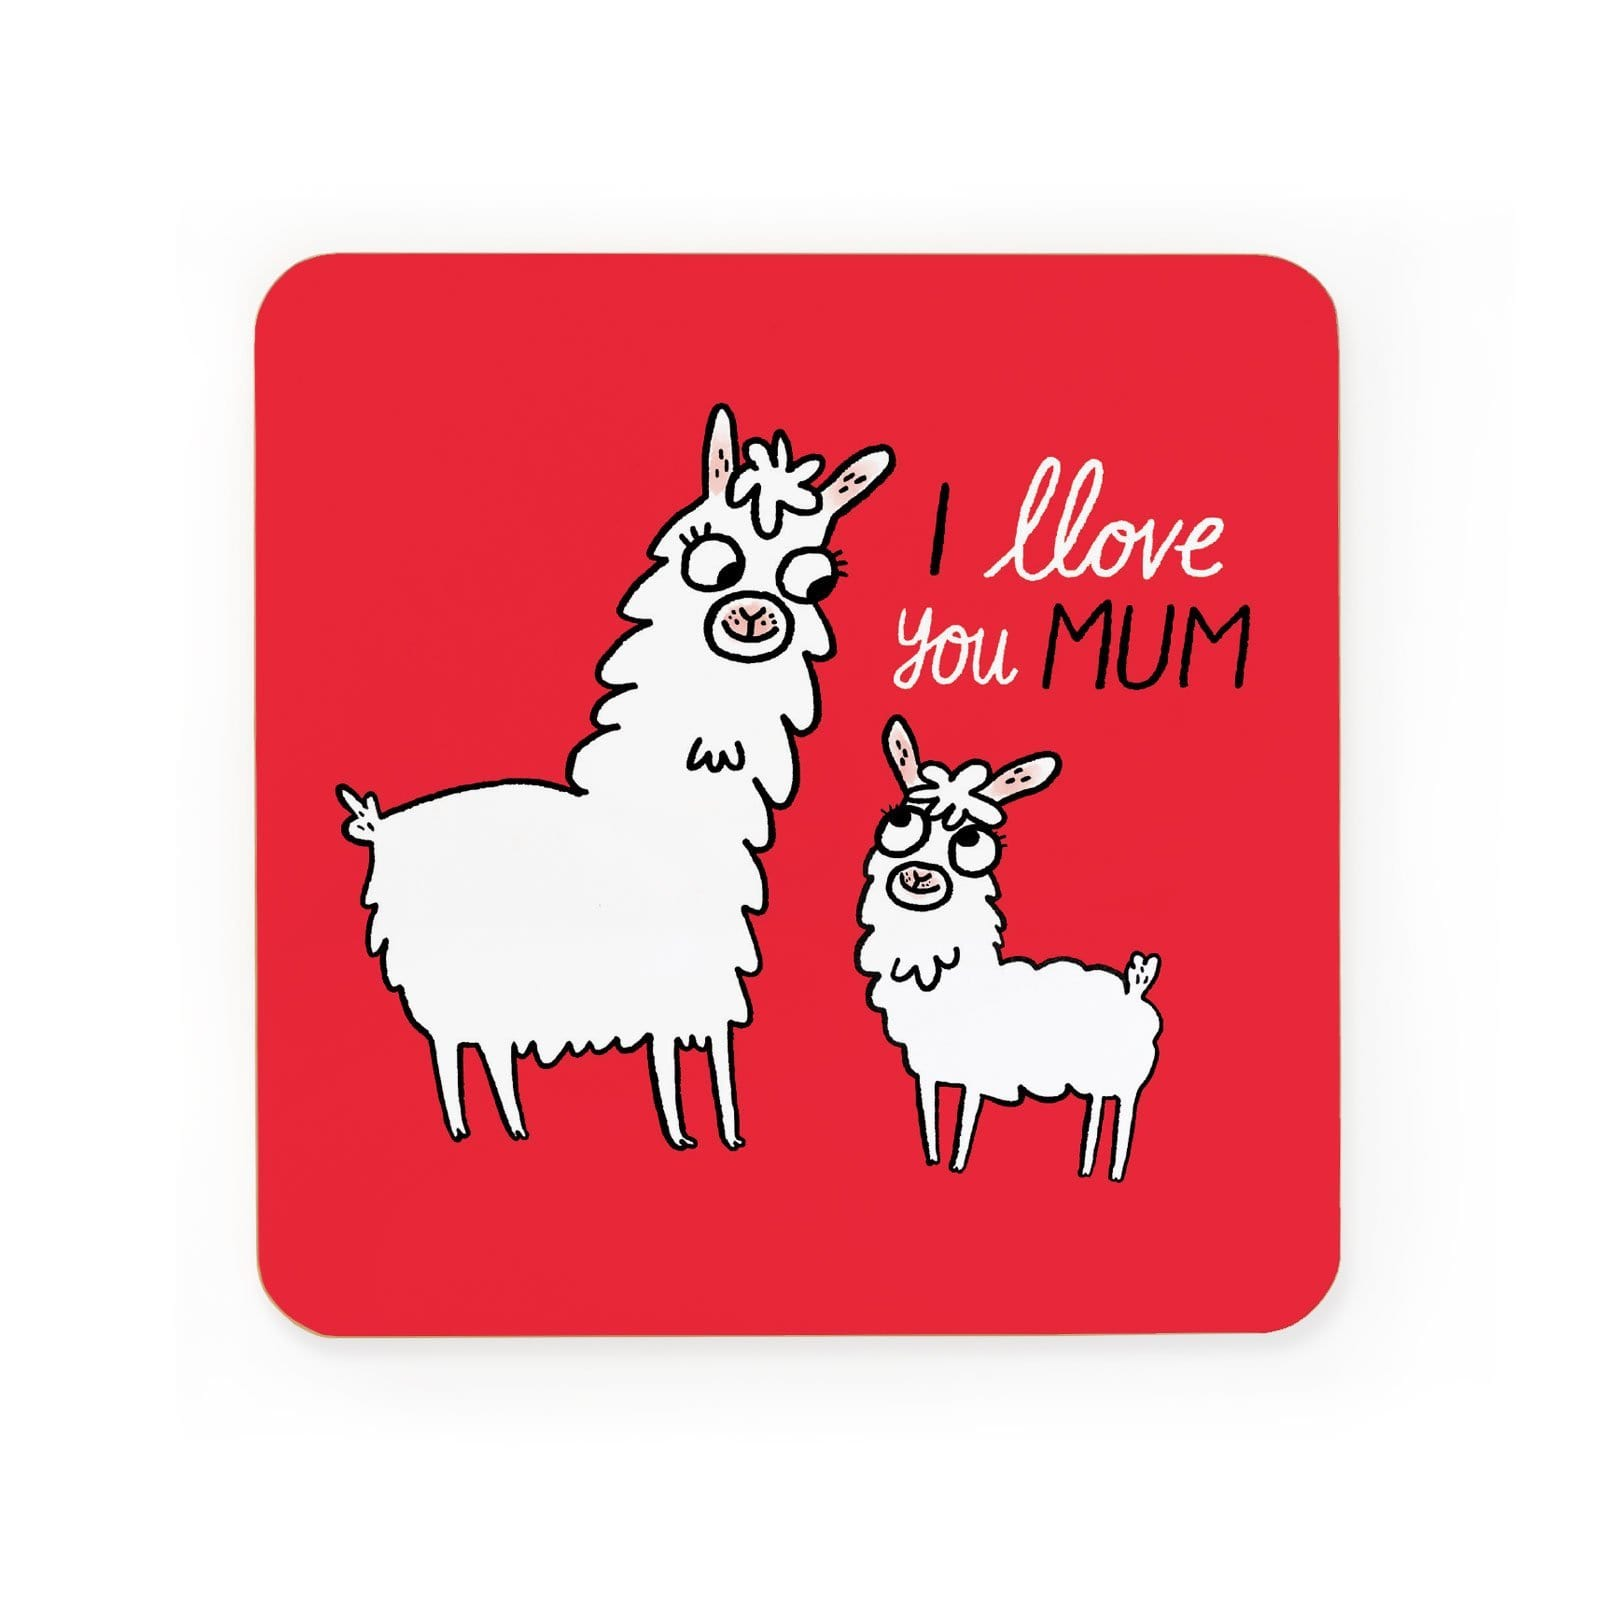 I LLove You Mum Coaster